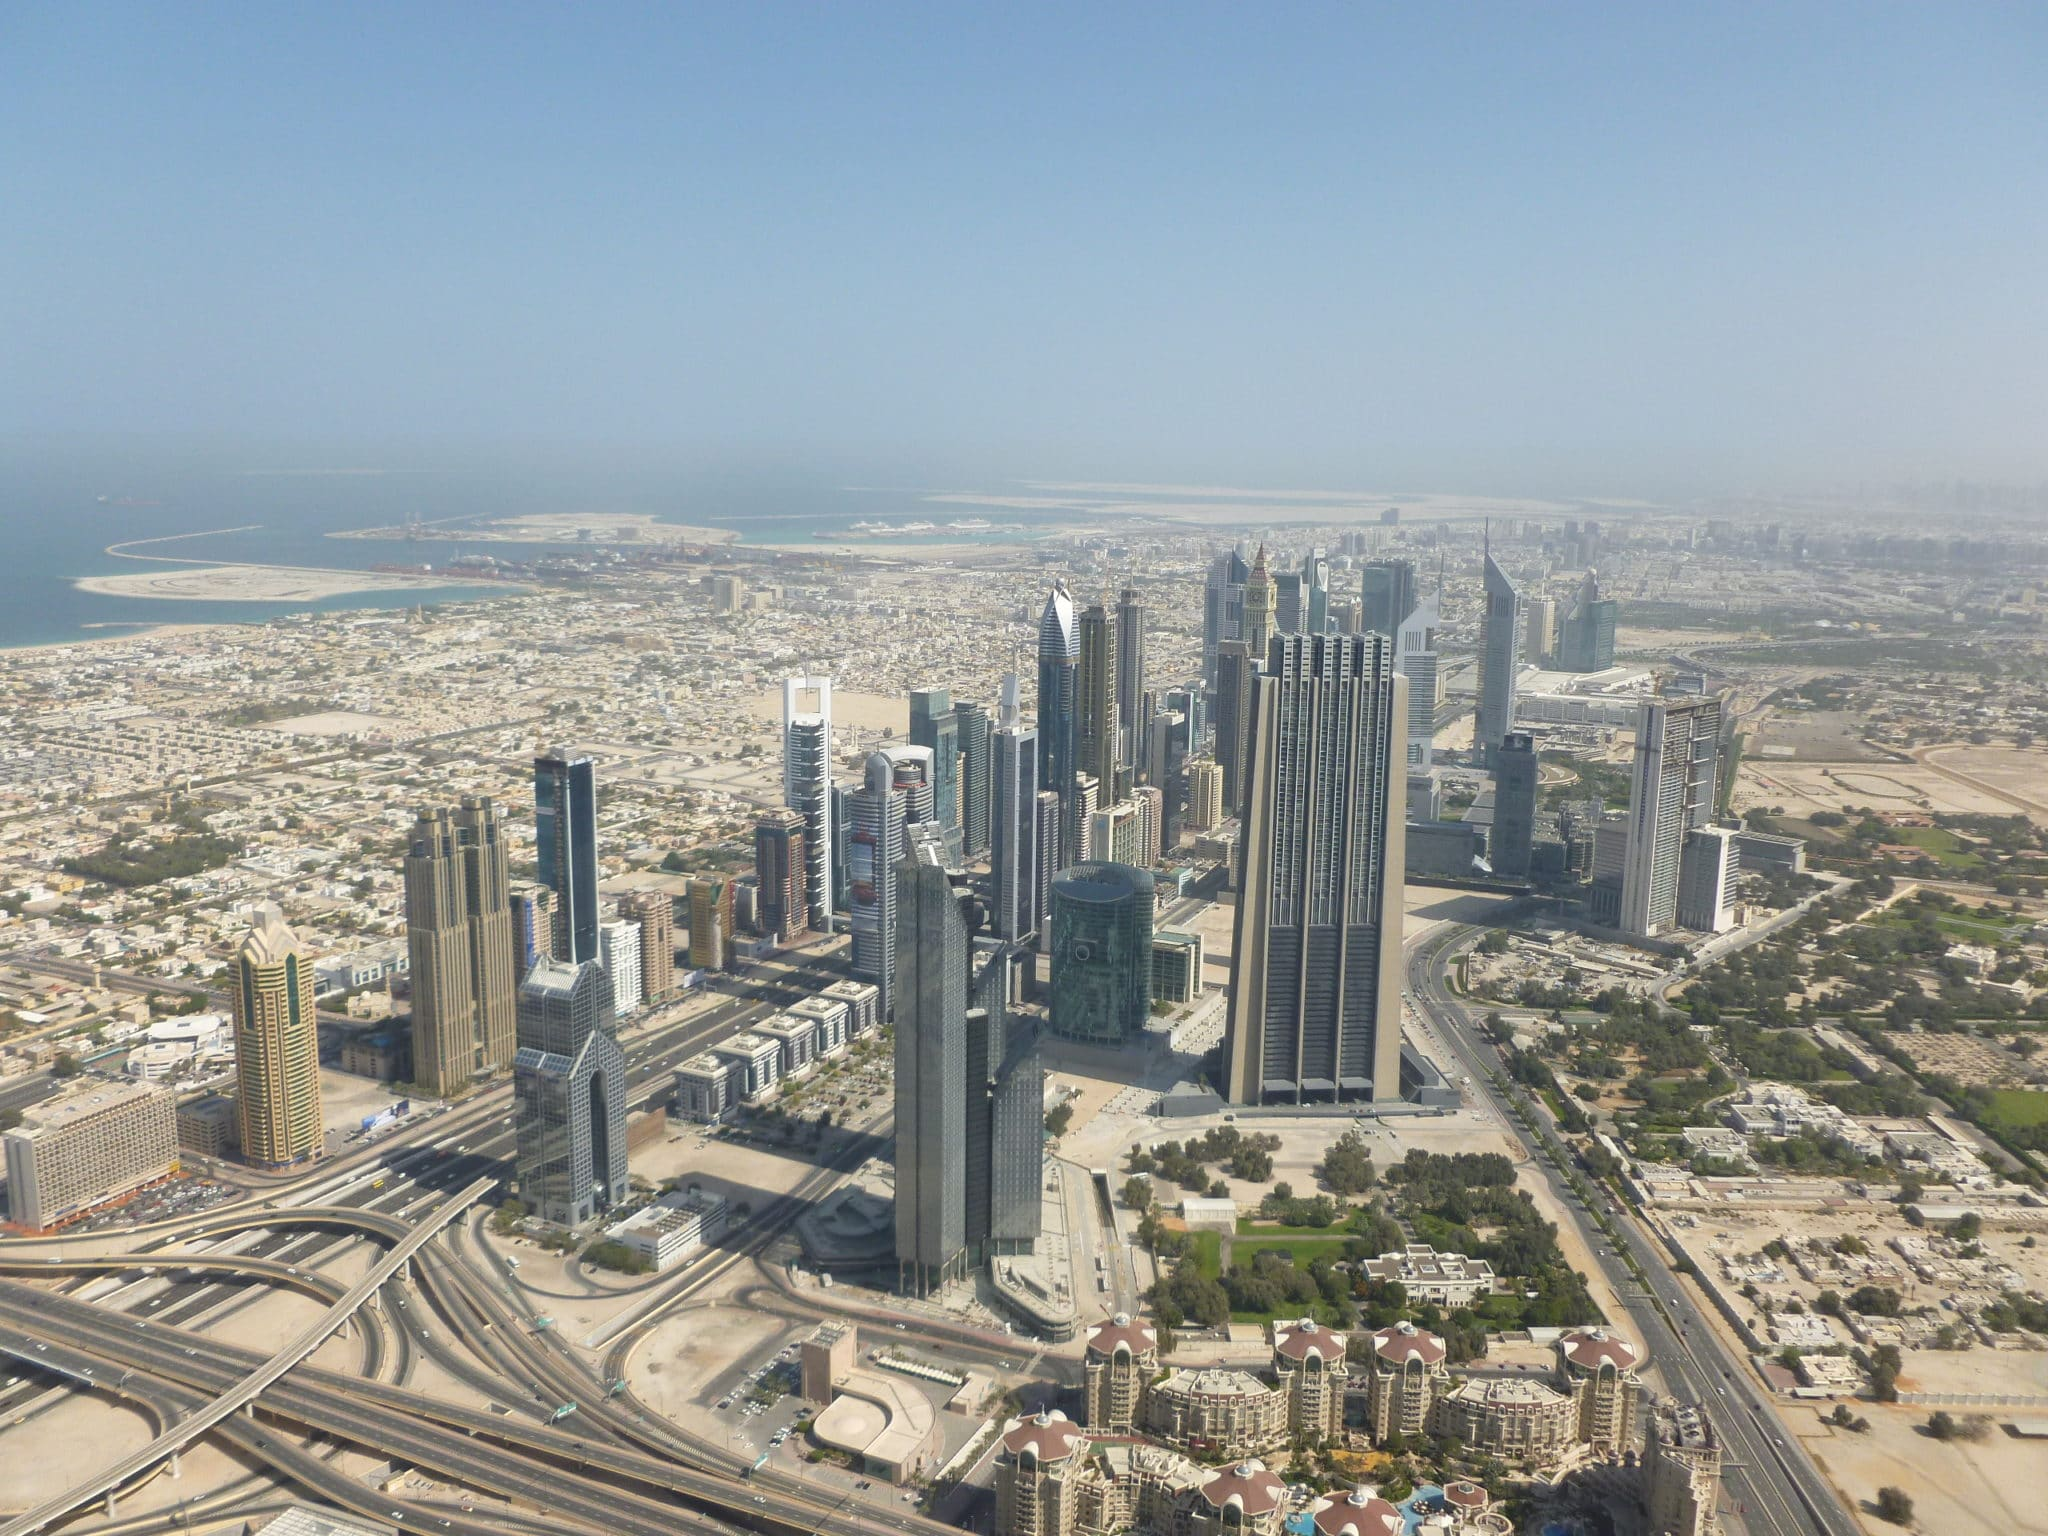 Let's get to know Abu Dhabi, Dubai and Sharjah better? - Wandering Life